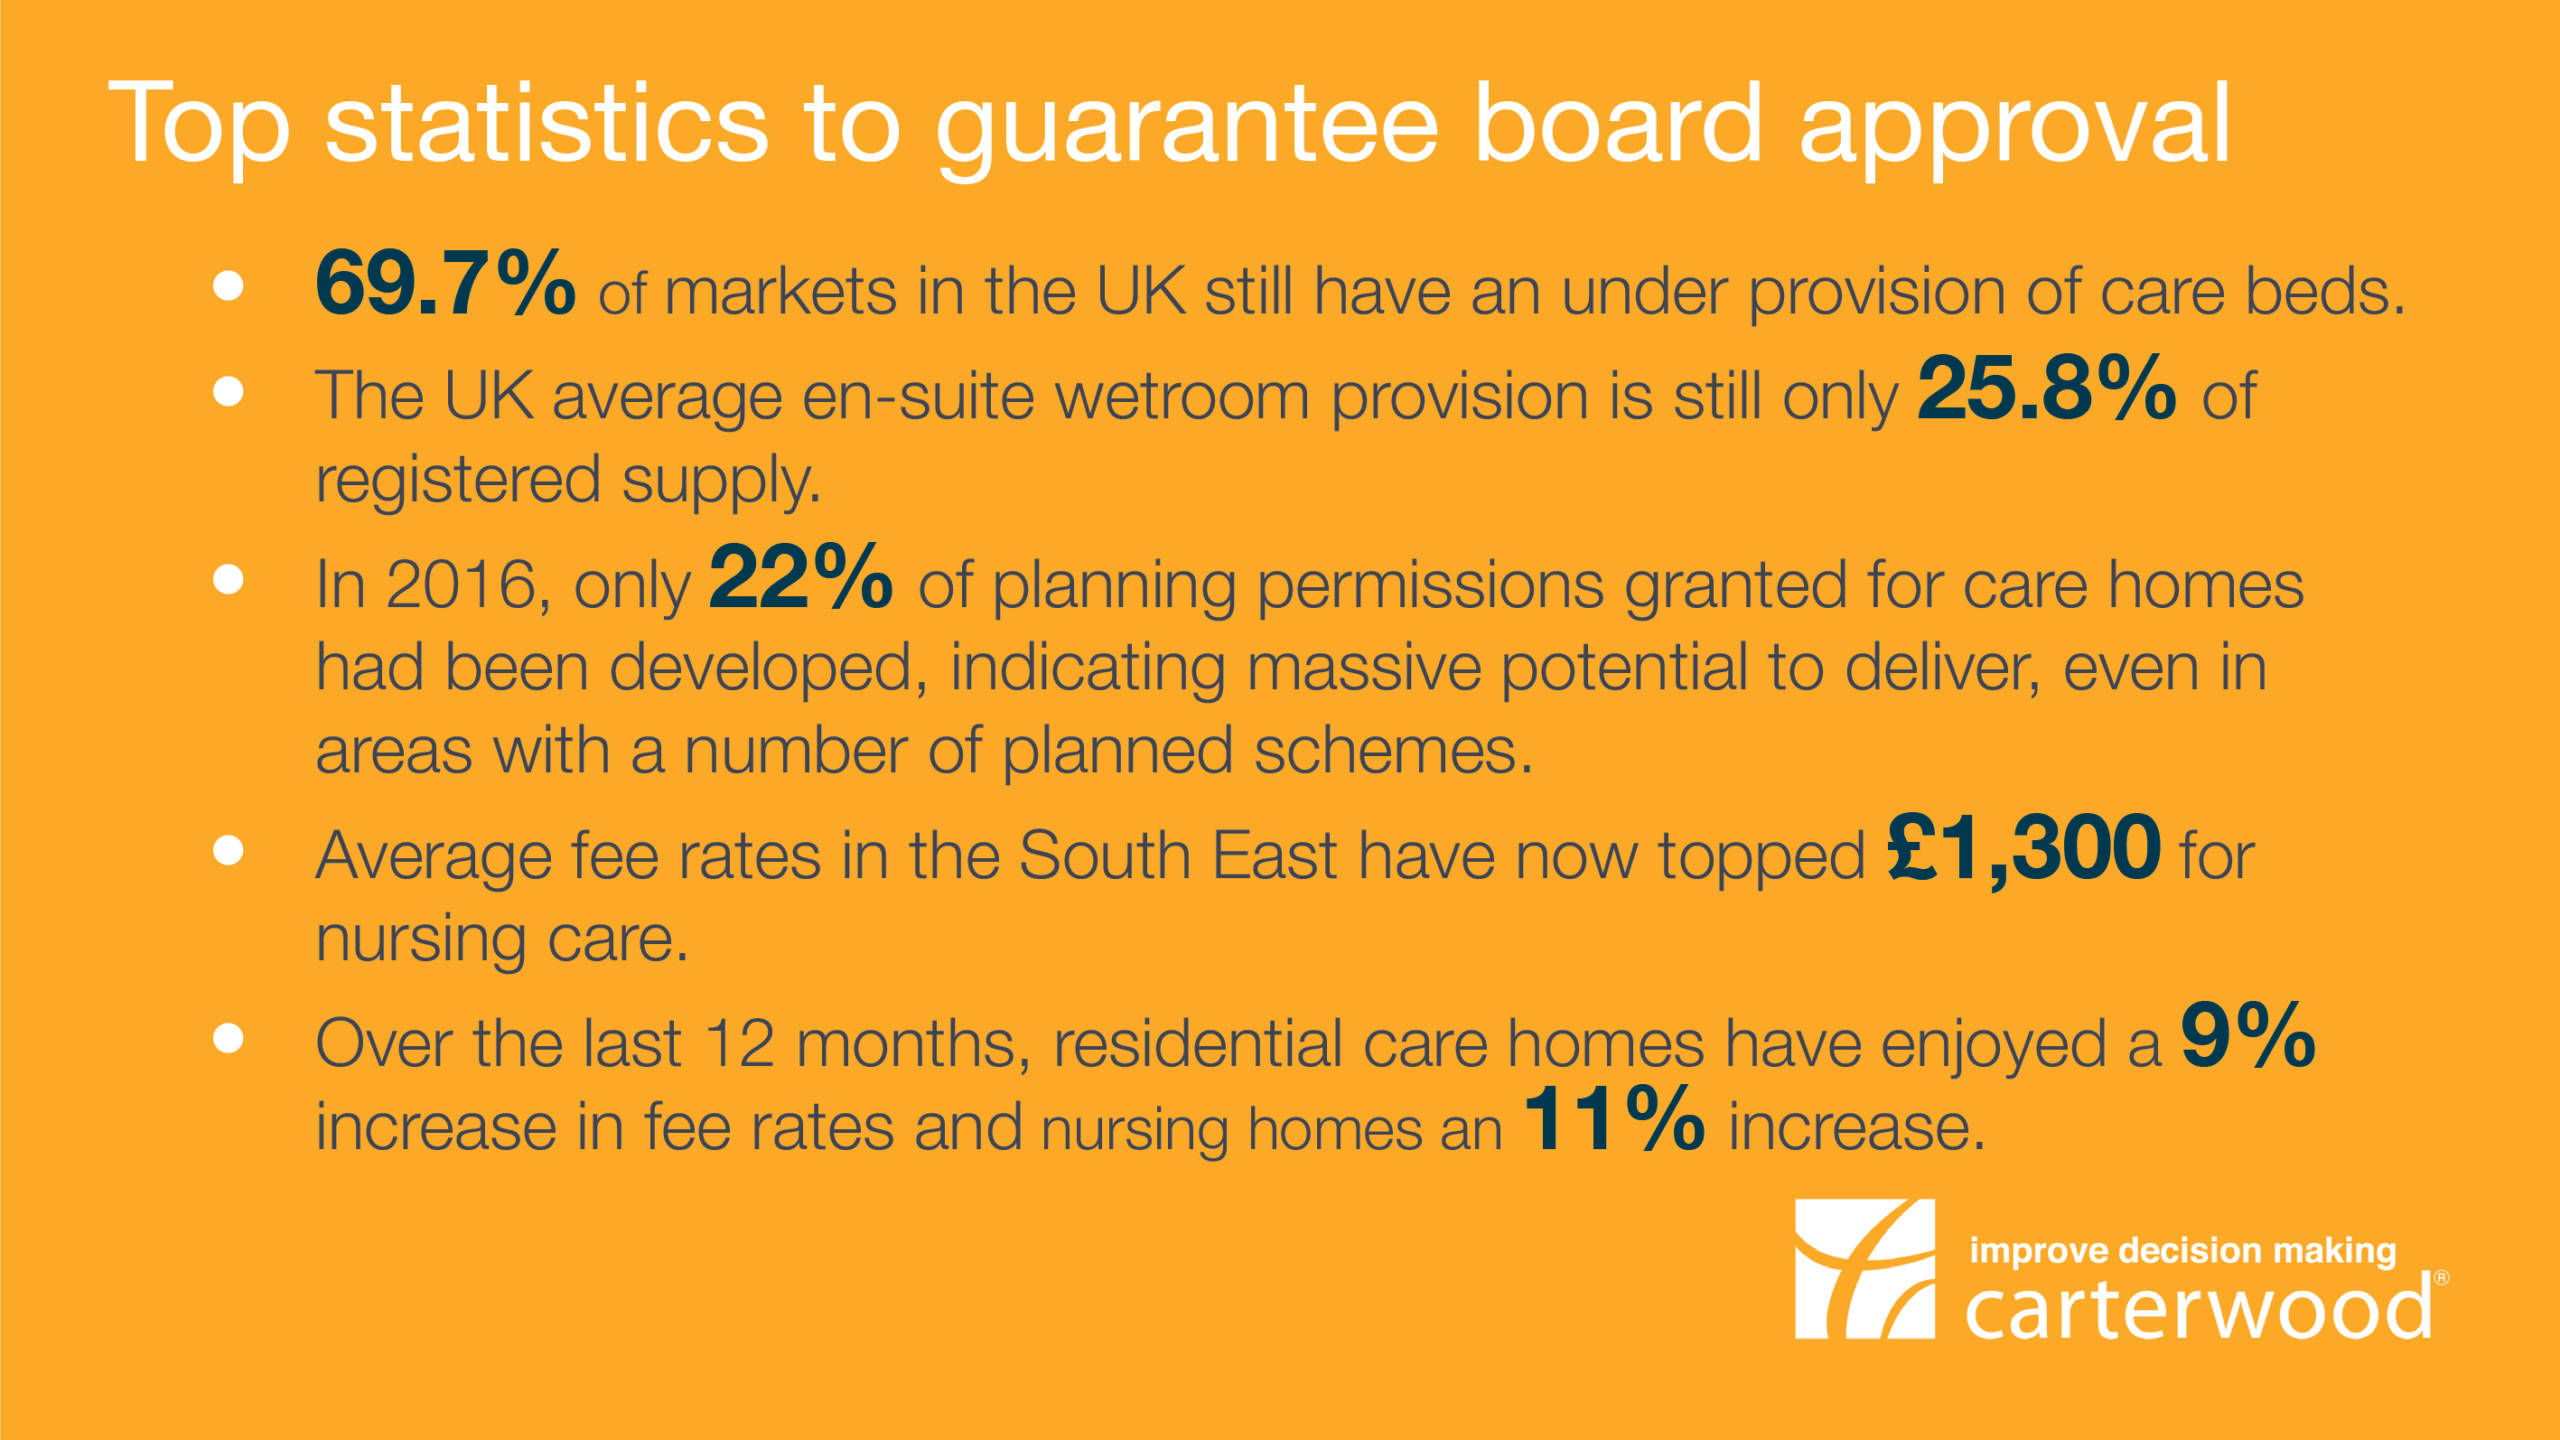 Top 5 statistics to help gain board approval